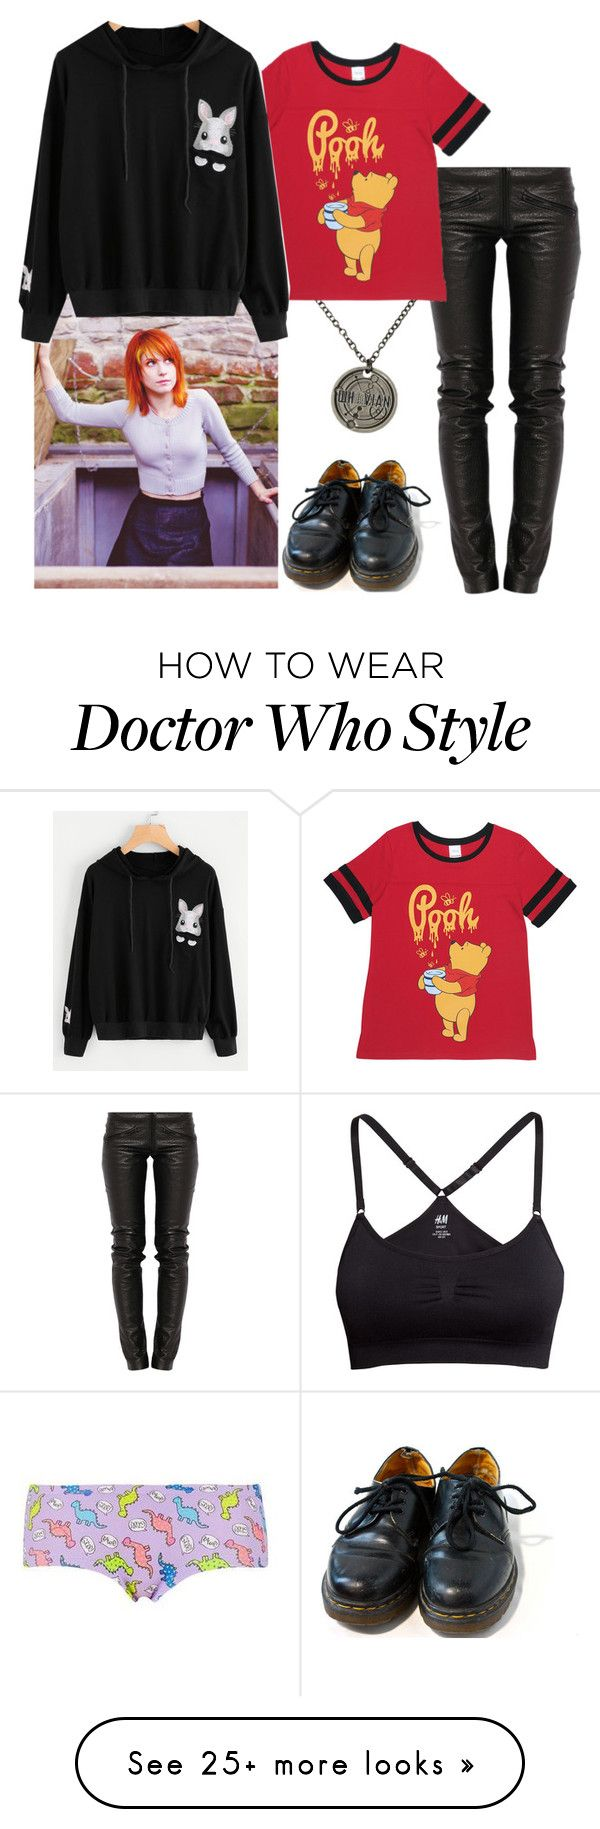 """bandit - visiting zayden"" by paramore-24 on Polyvore featuring H&M, Topshop, Hot Topic, Preen, Disney and Dr. Martens"